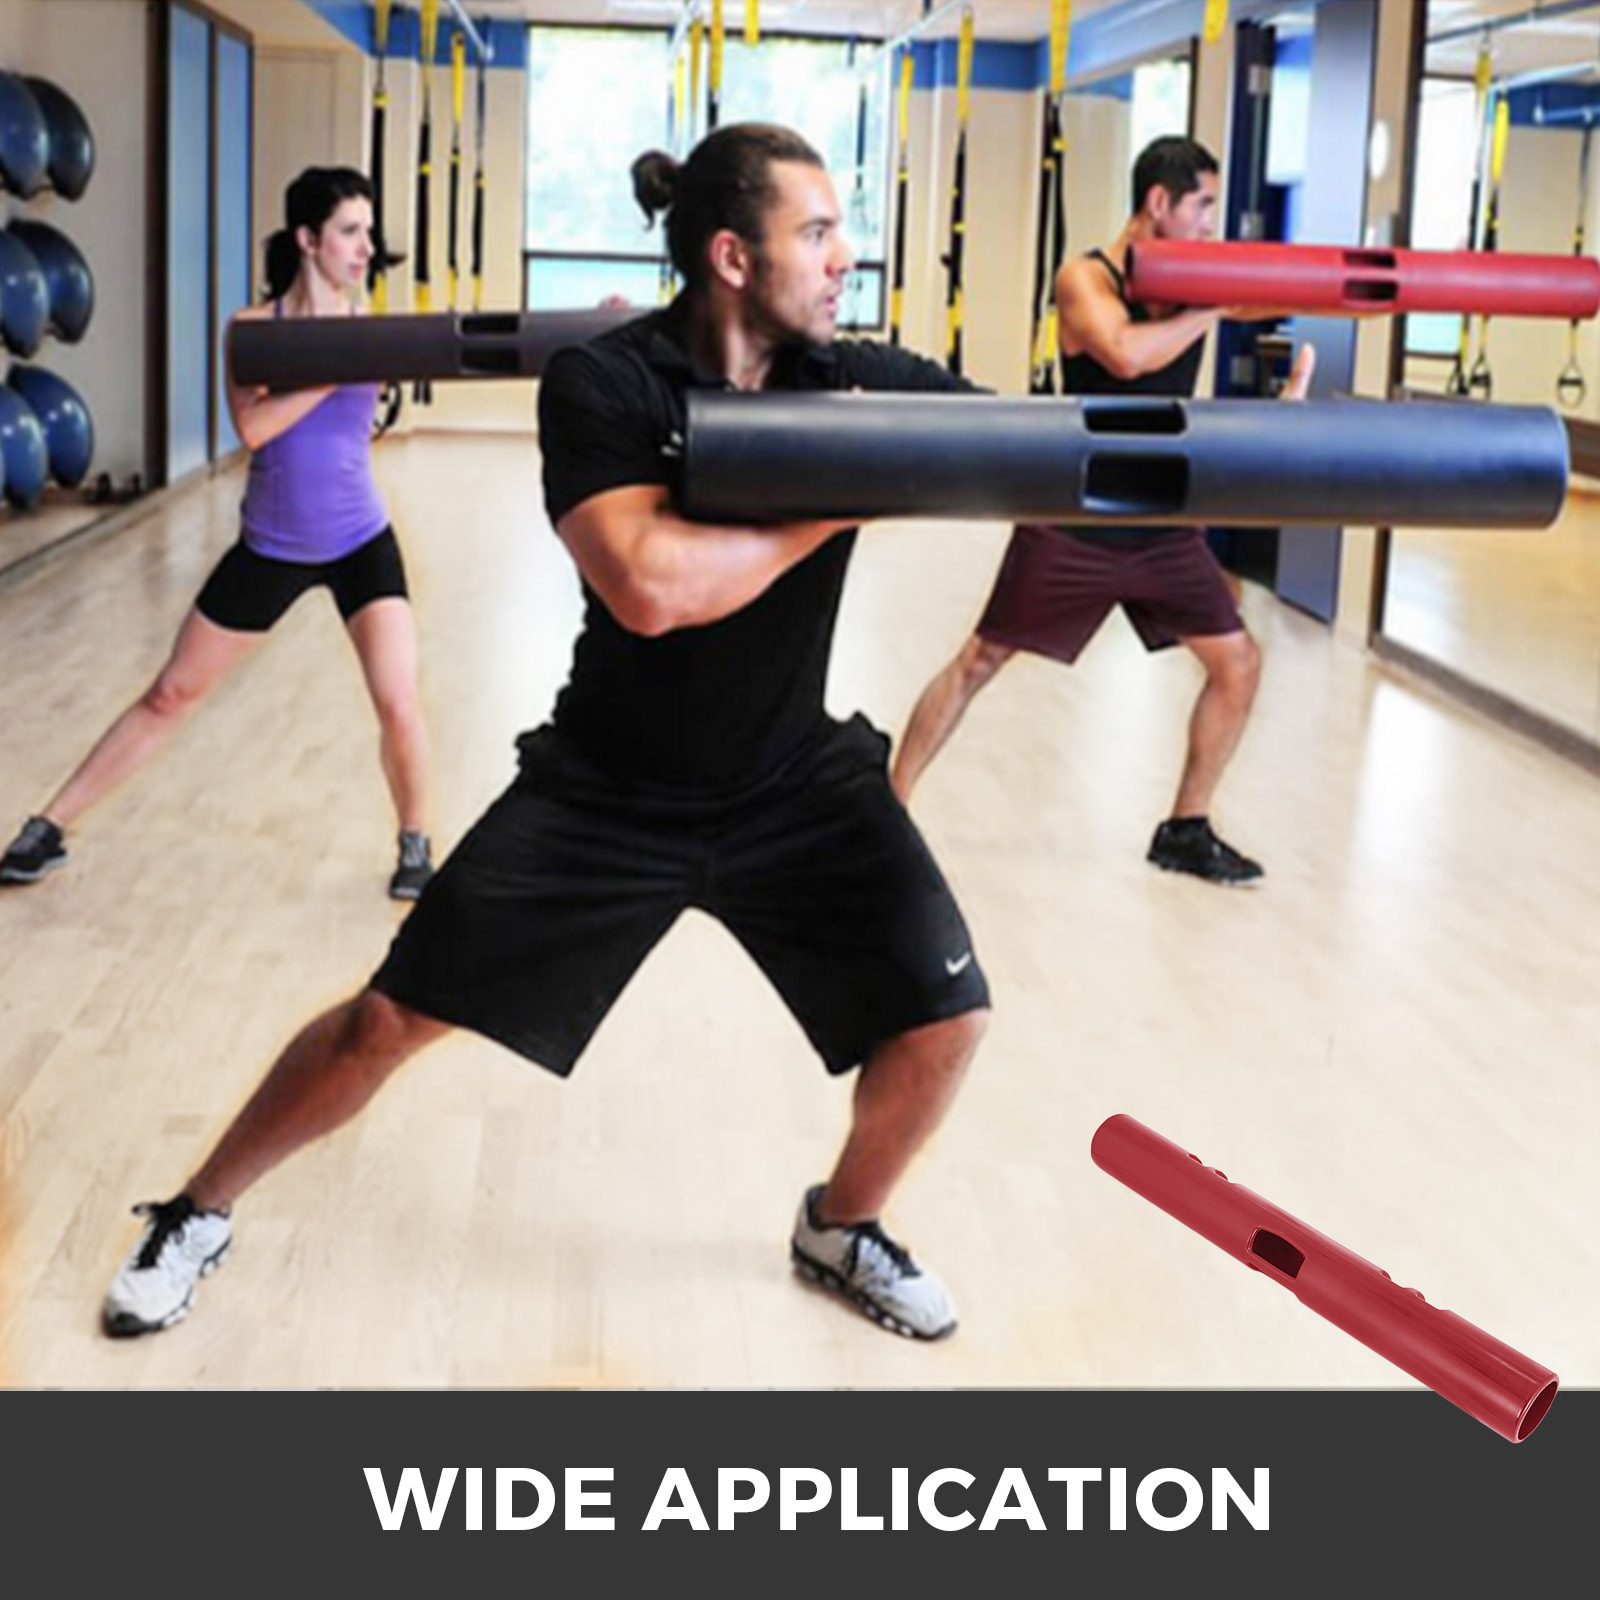 Vipr-Fitpro-Fitness-Tube-Loaded-Movement-Training-weightlifting-4-6-8-10-12-Kg thumbnail 103